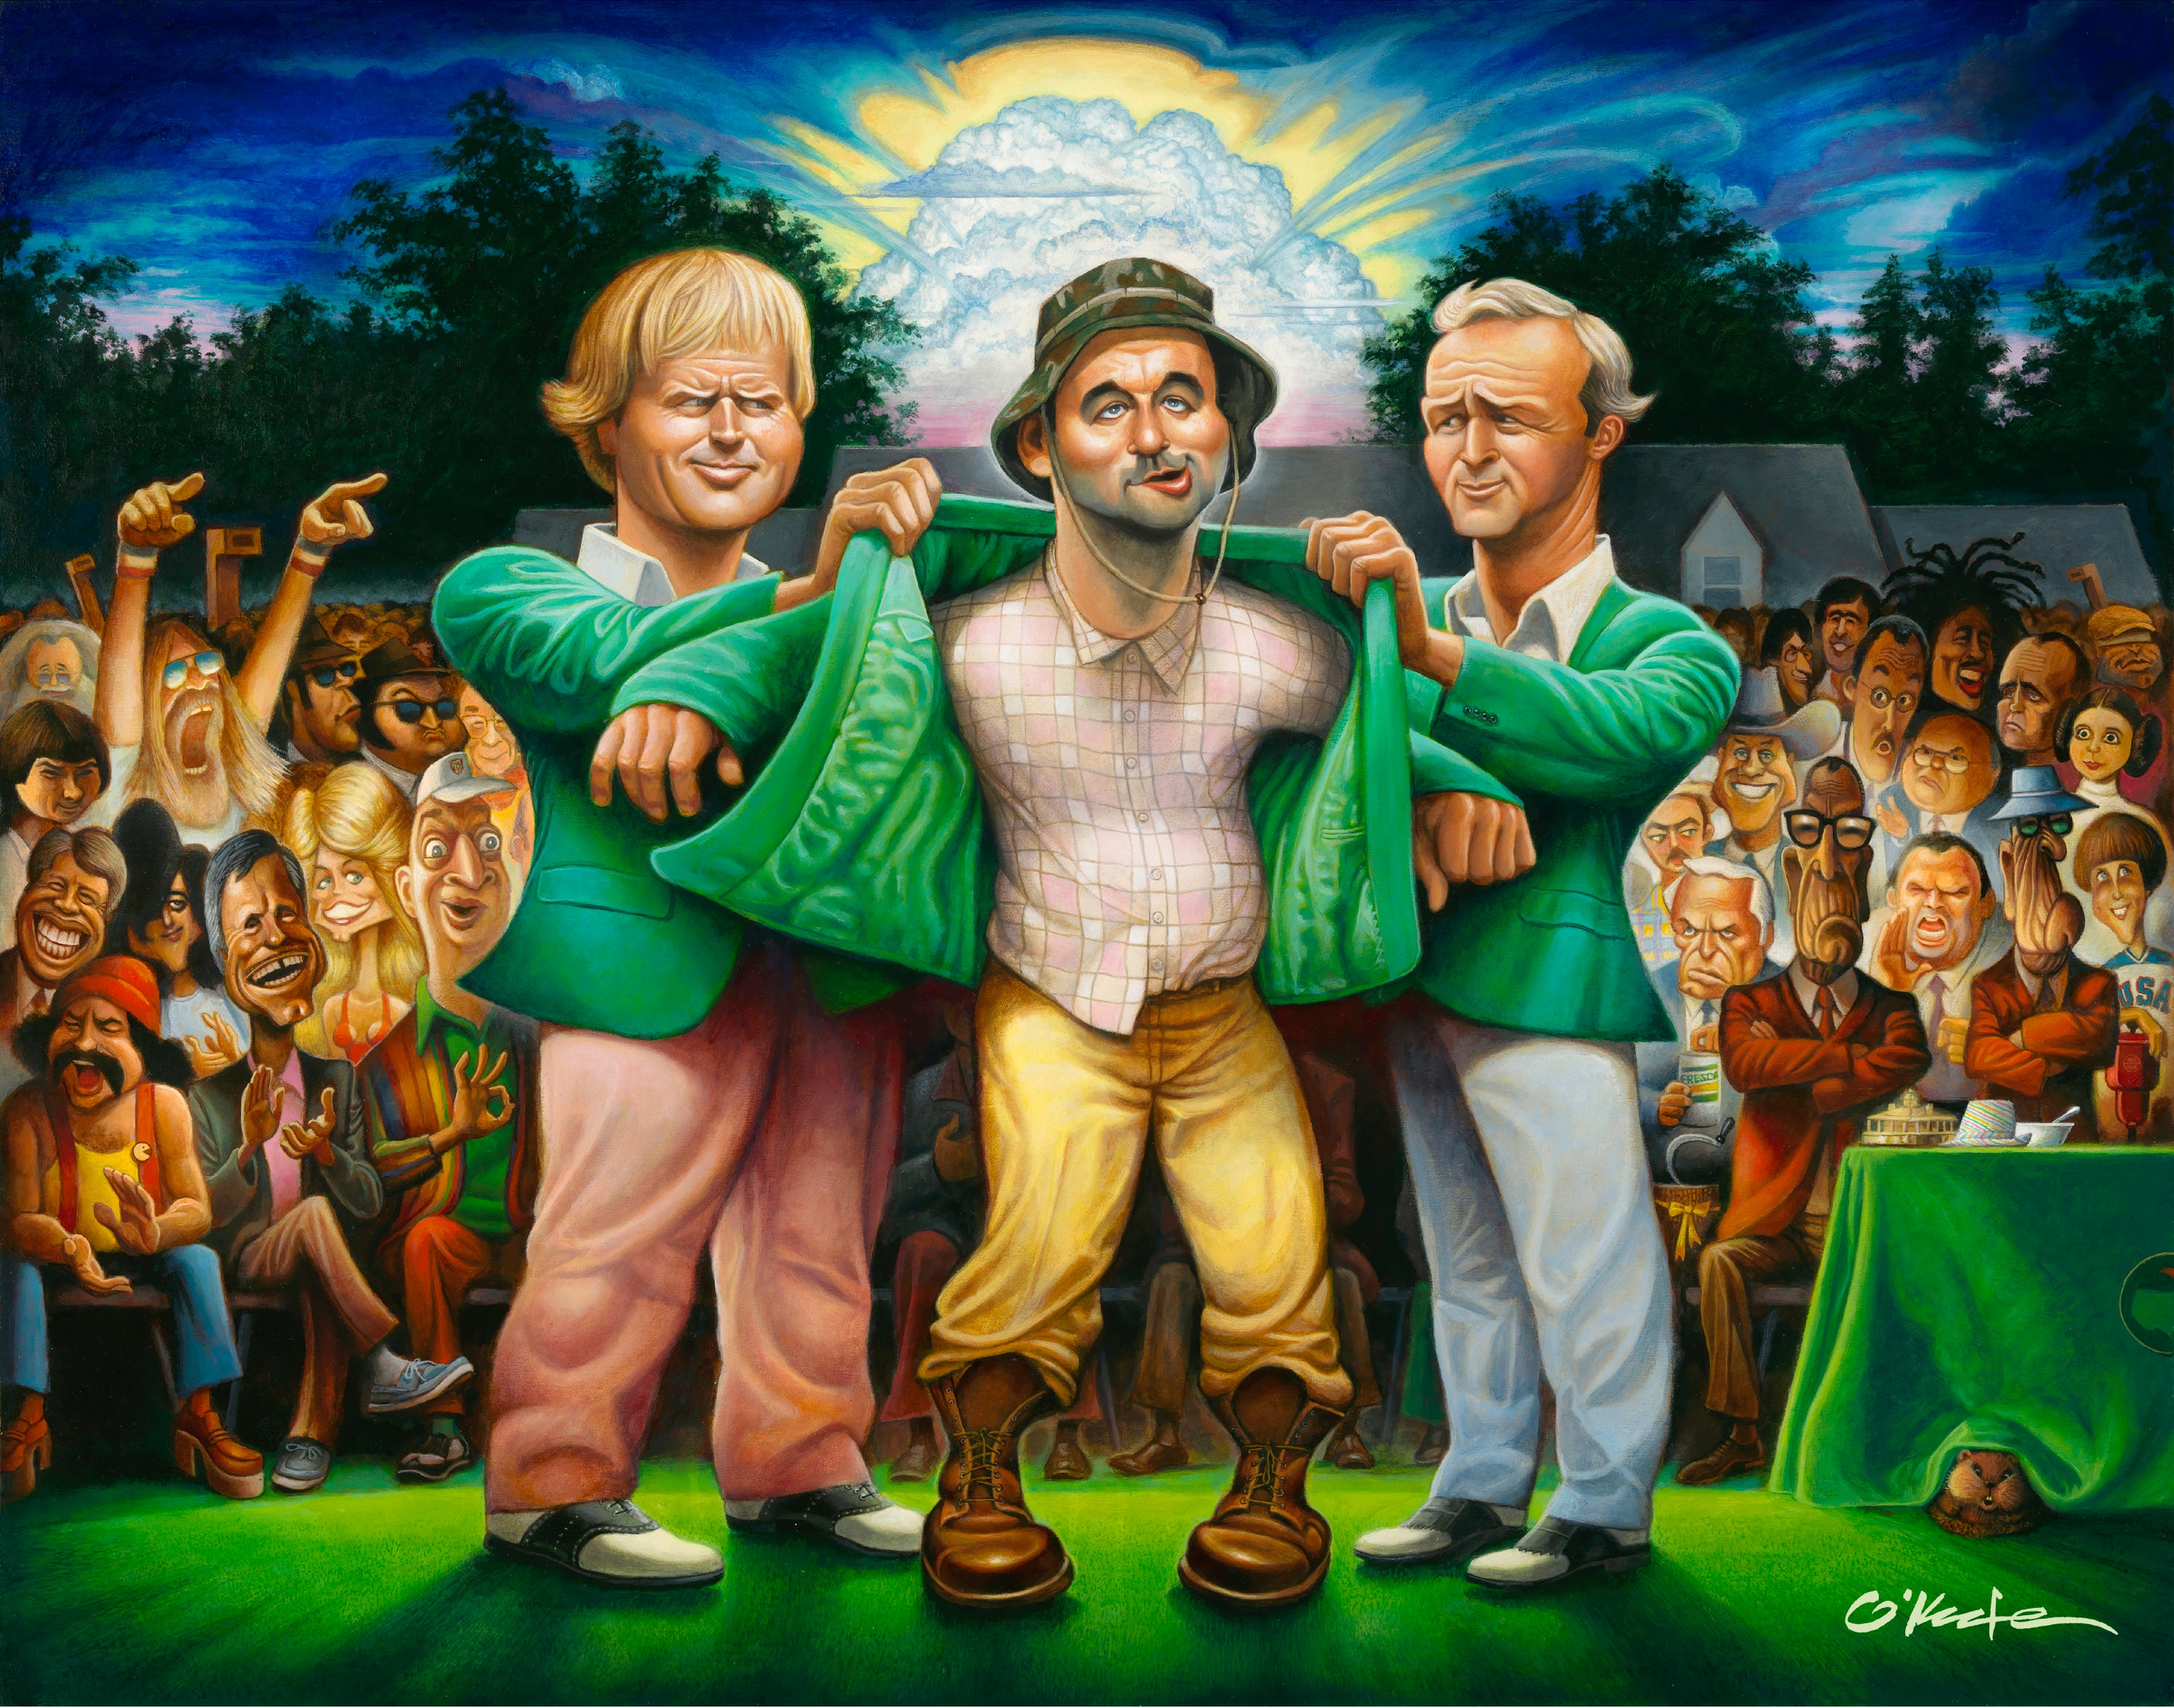 THE GREEN JACKET - A TRIBUTE TO CARL SPACKLER & 1980 - Fine Art Giclée print in 3 sizes - framed or unframed